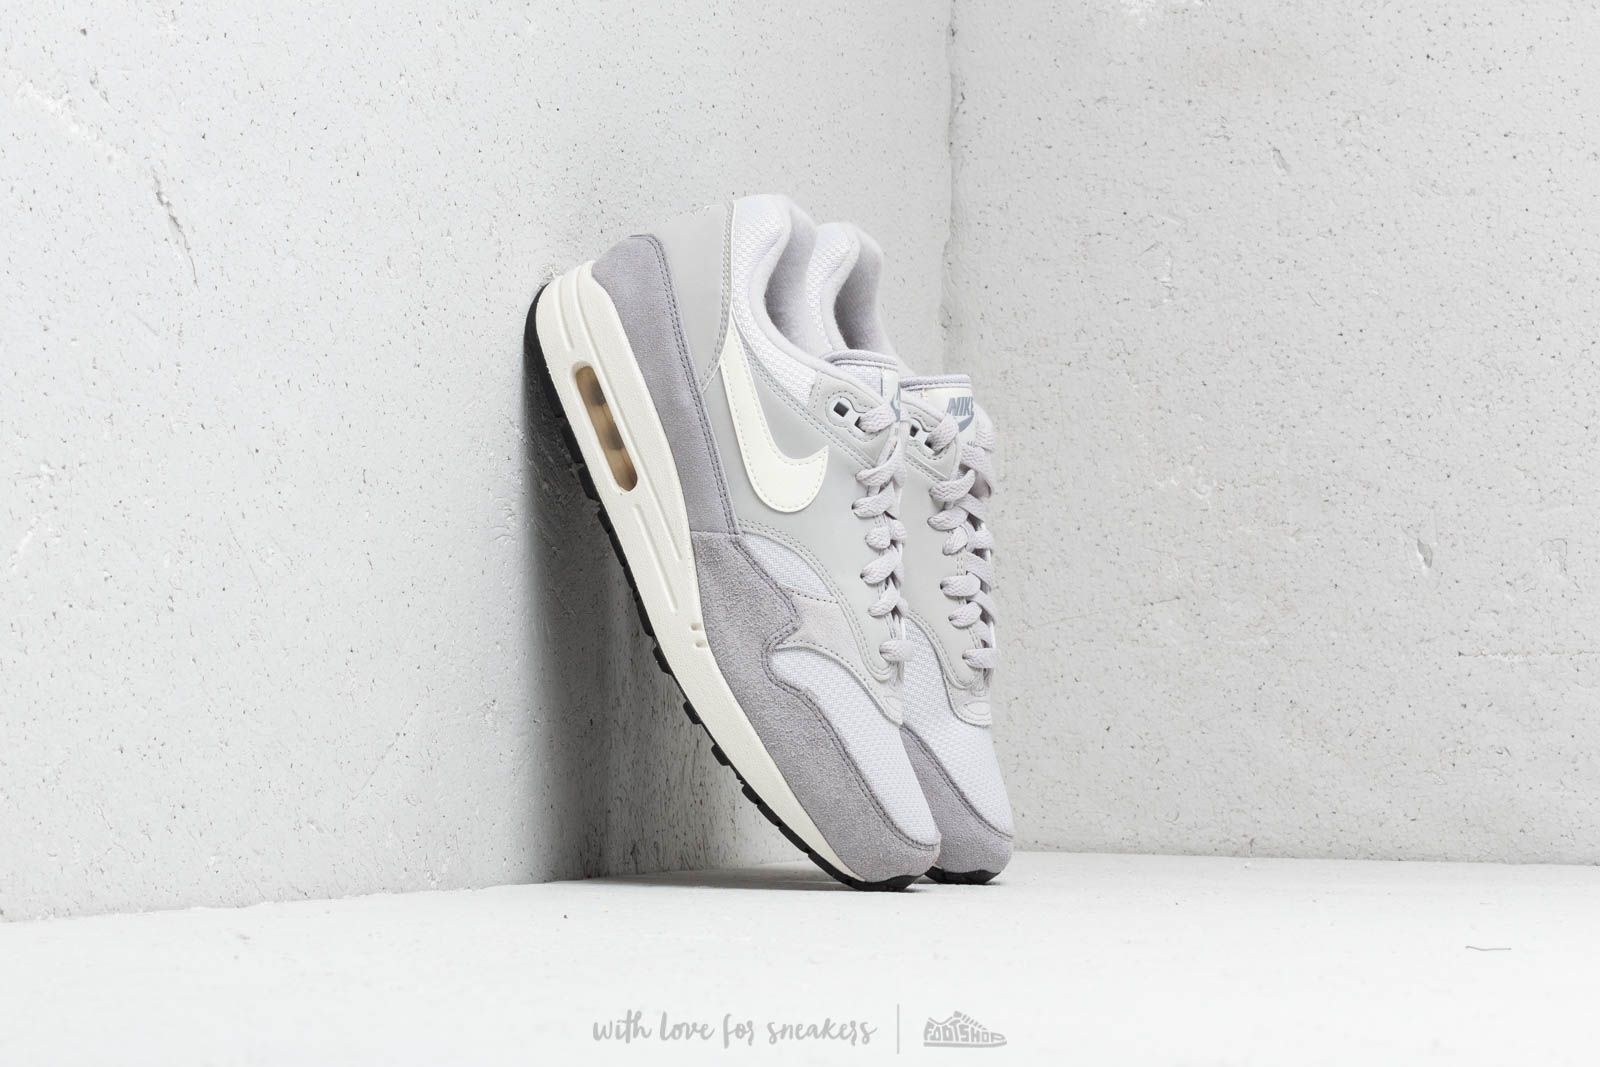 discount 208df 317e2 Nike Air Max 1 Vast Grey  Sail-Sail-Wolf Grey at a great